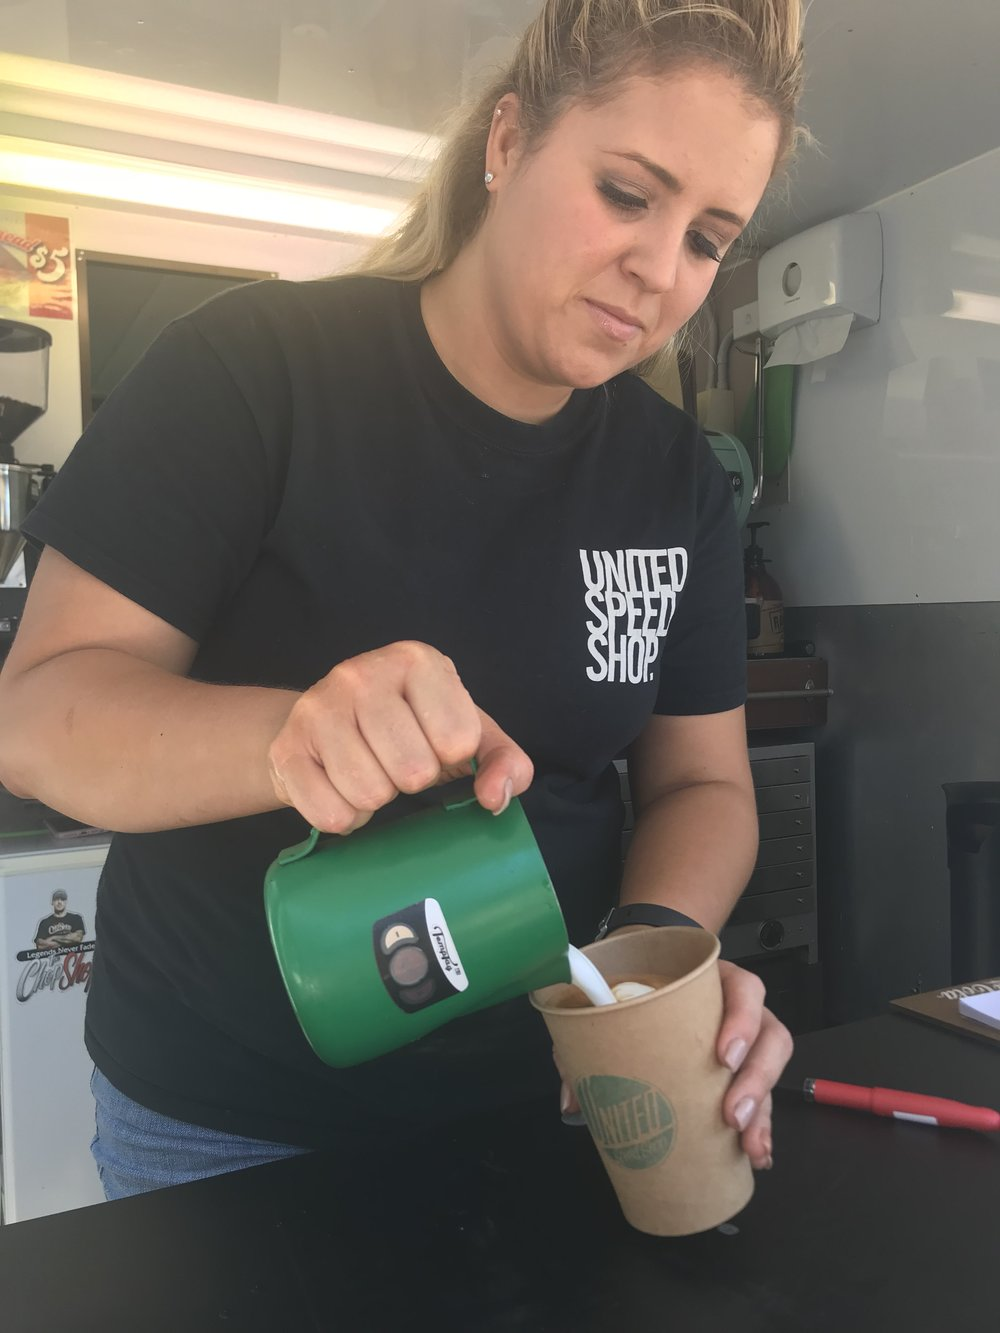 United speed cafe georgetown newcastle